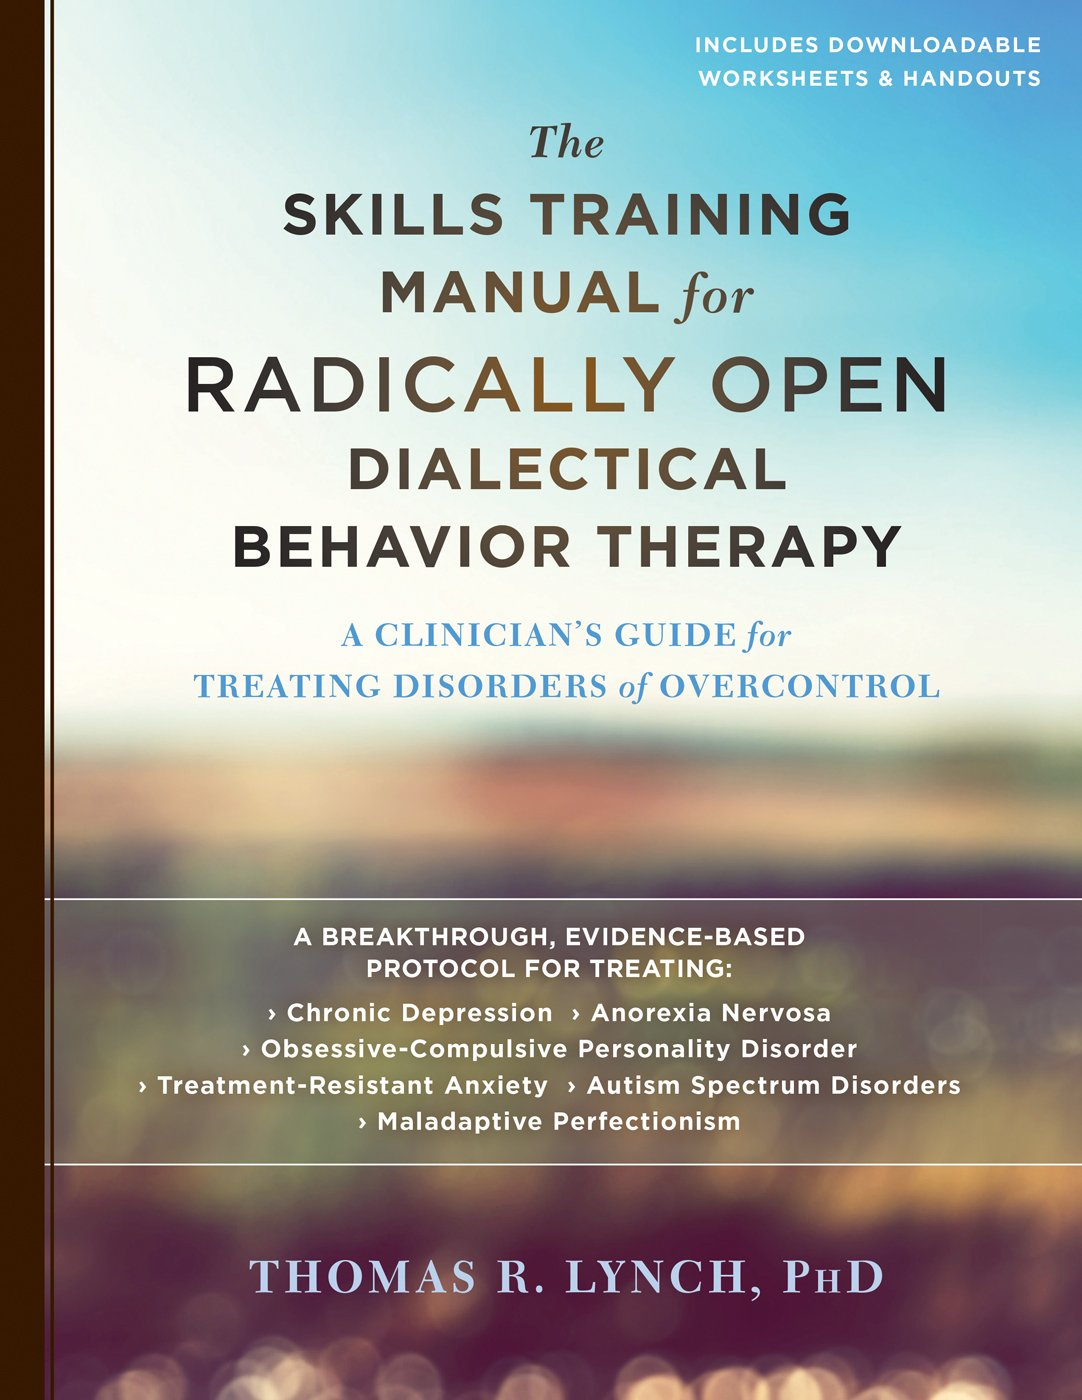 Amazon.com: The Skills Training Manual for Radically Open Dialectical  Behavior Therapy: A Clinician's Guide for Treating Disorders of Overcontrol  ...